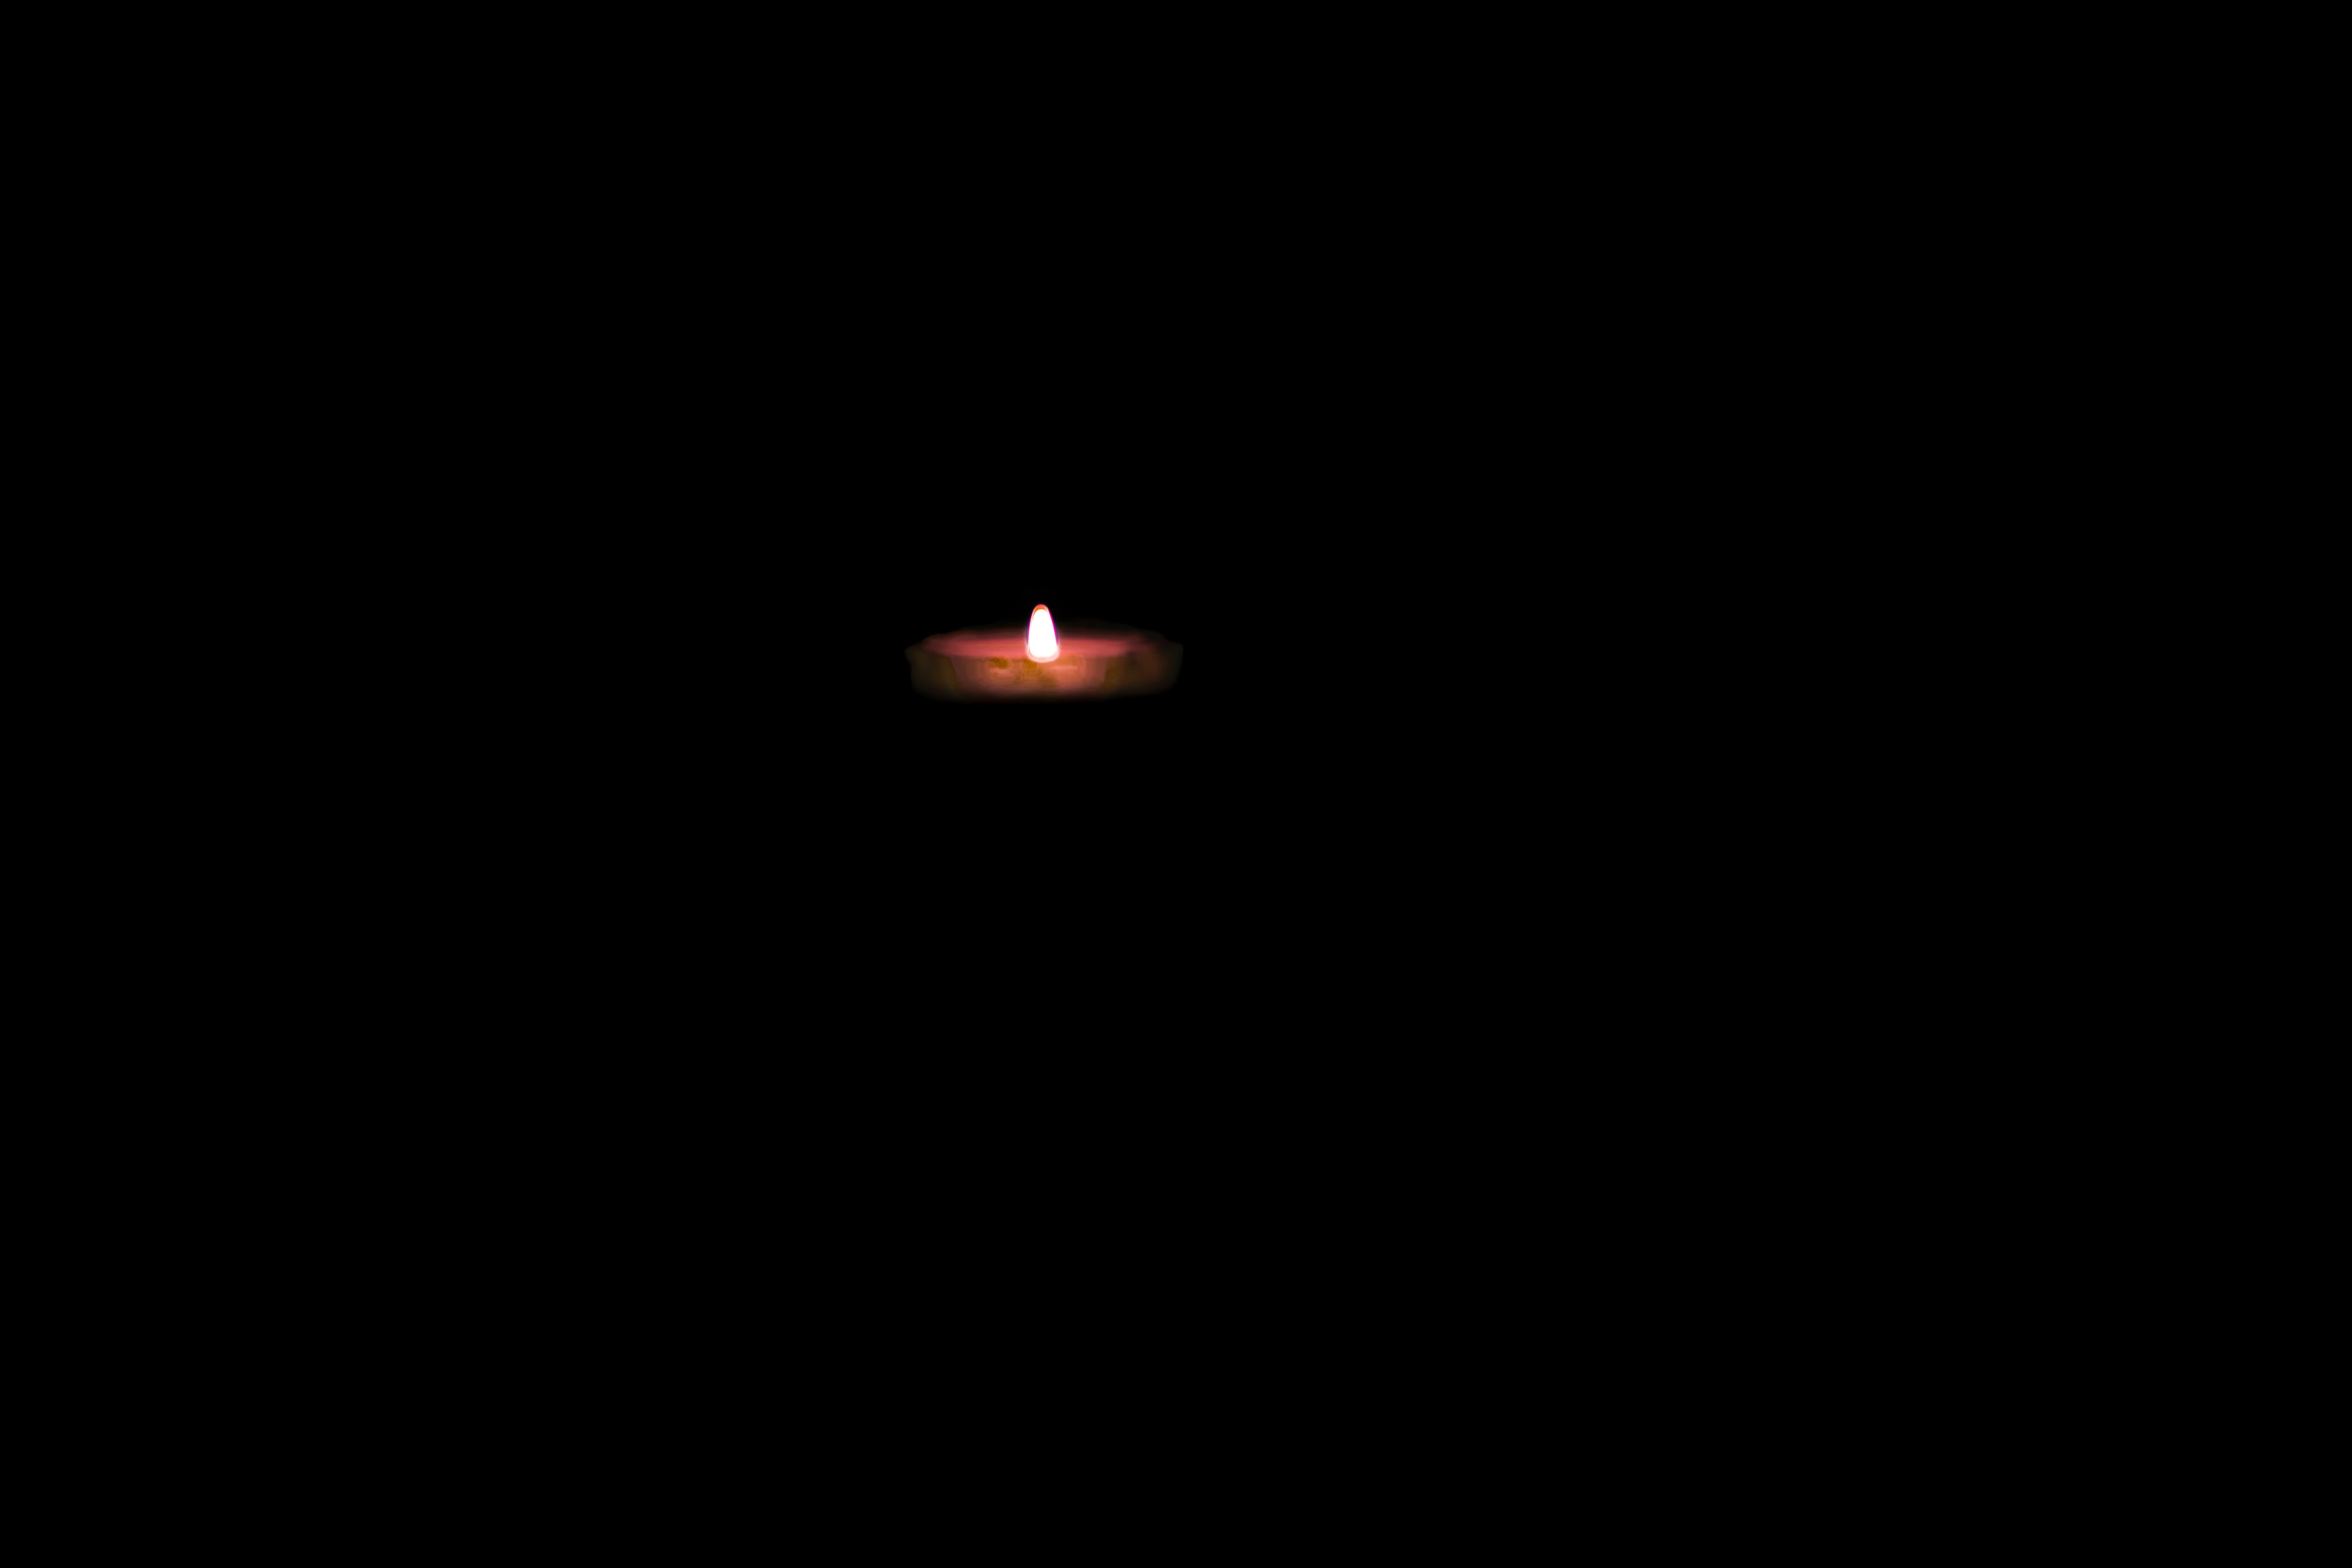 Free stock photo of black background, candle flame, candle light, dark background